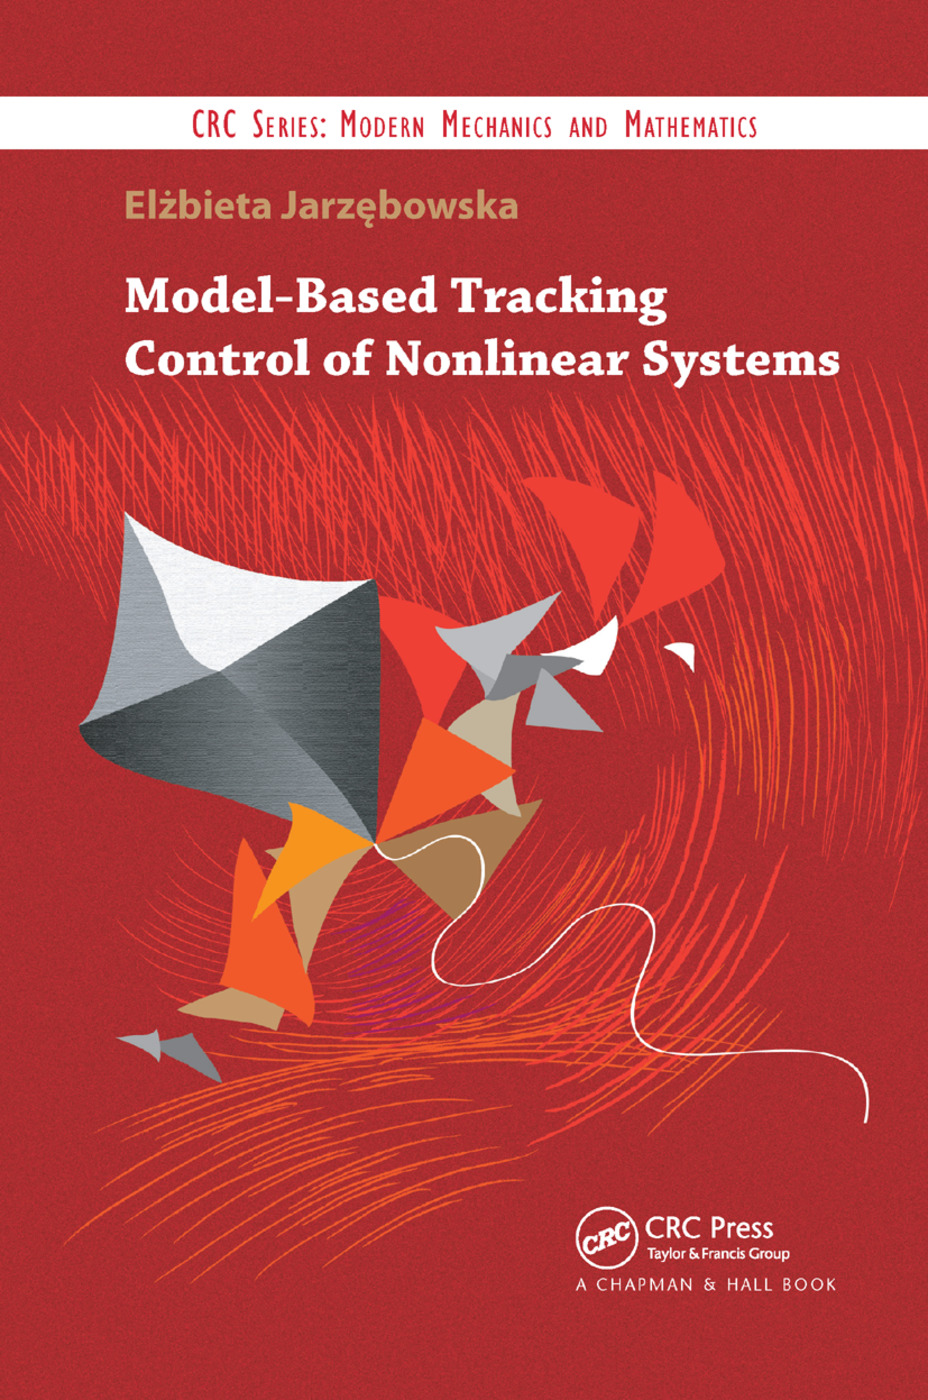 Model-Based Tracking Control of Nonlinear Systems